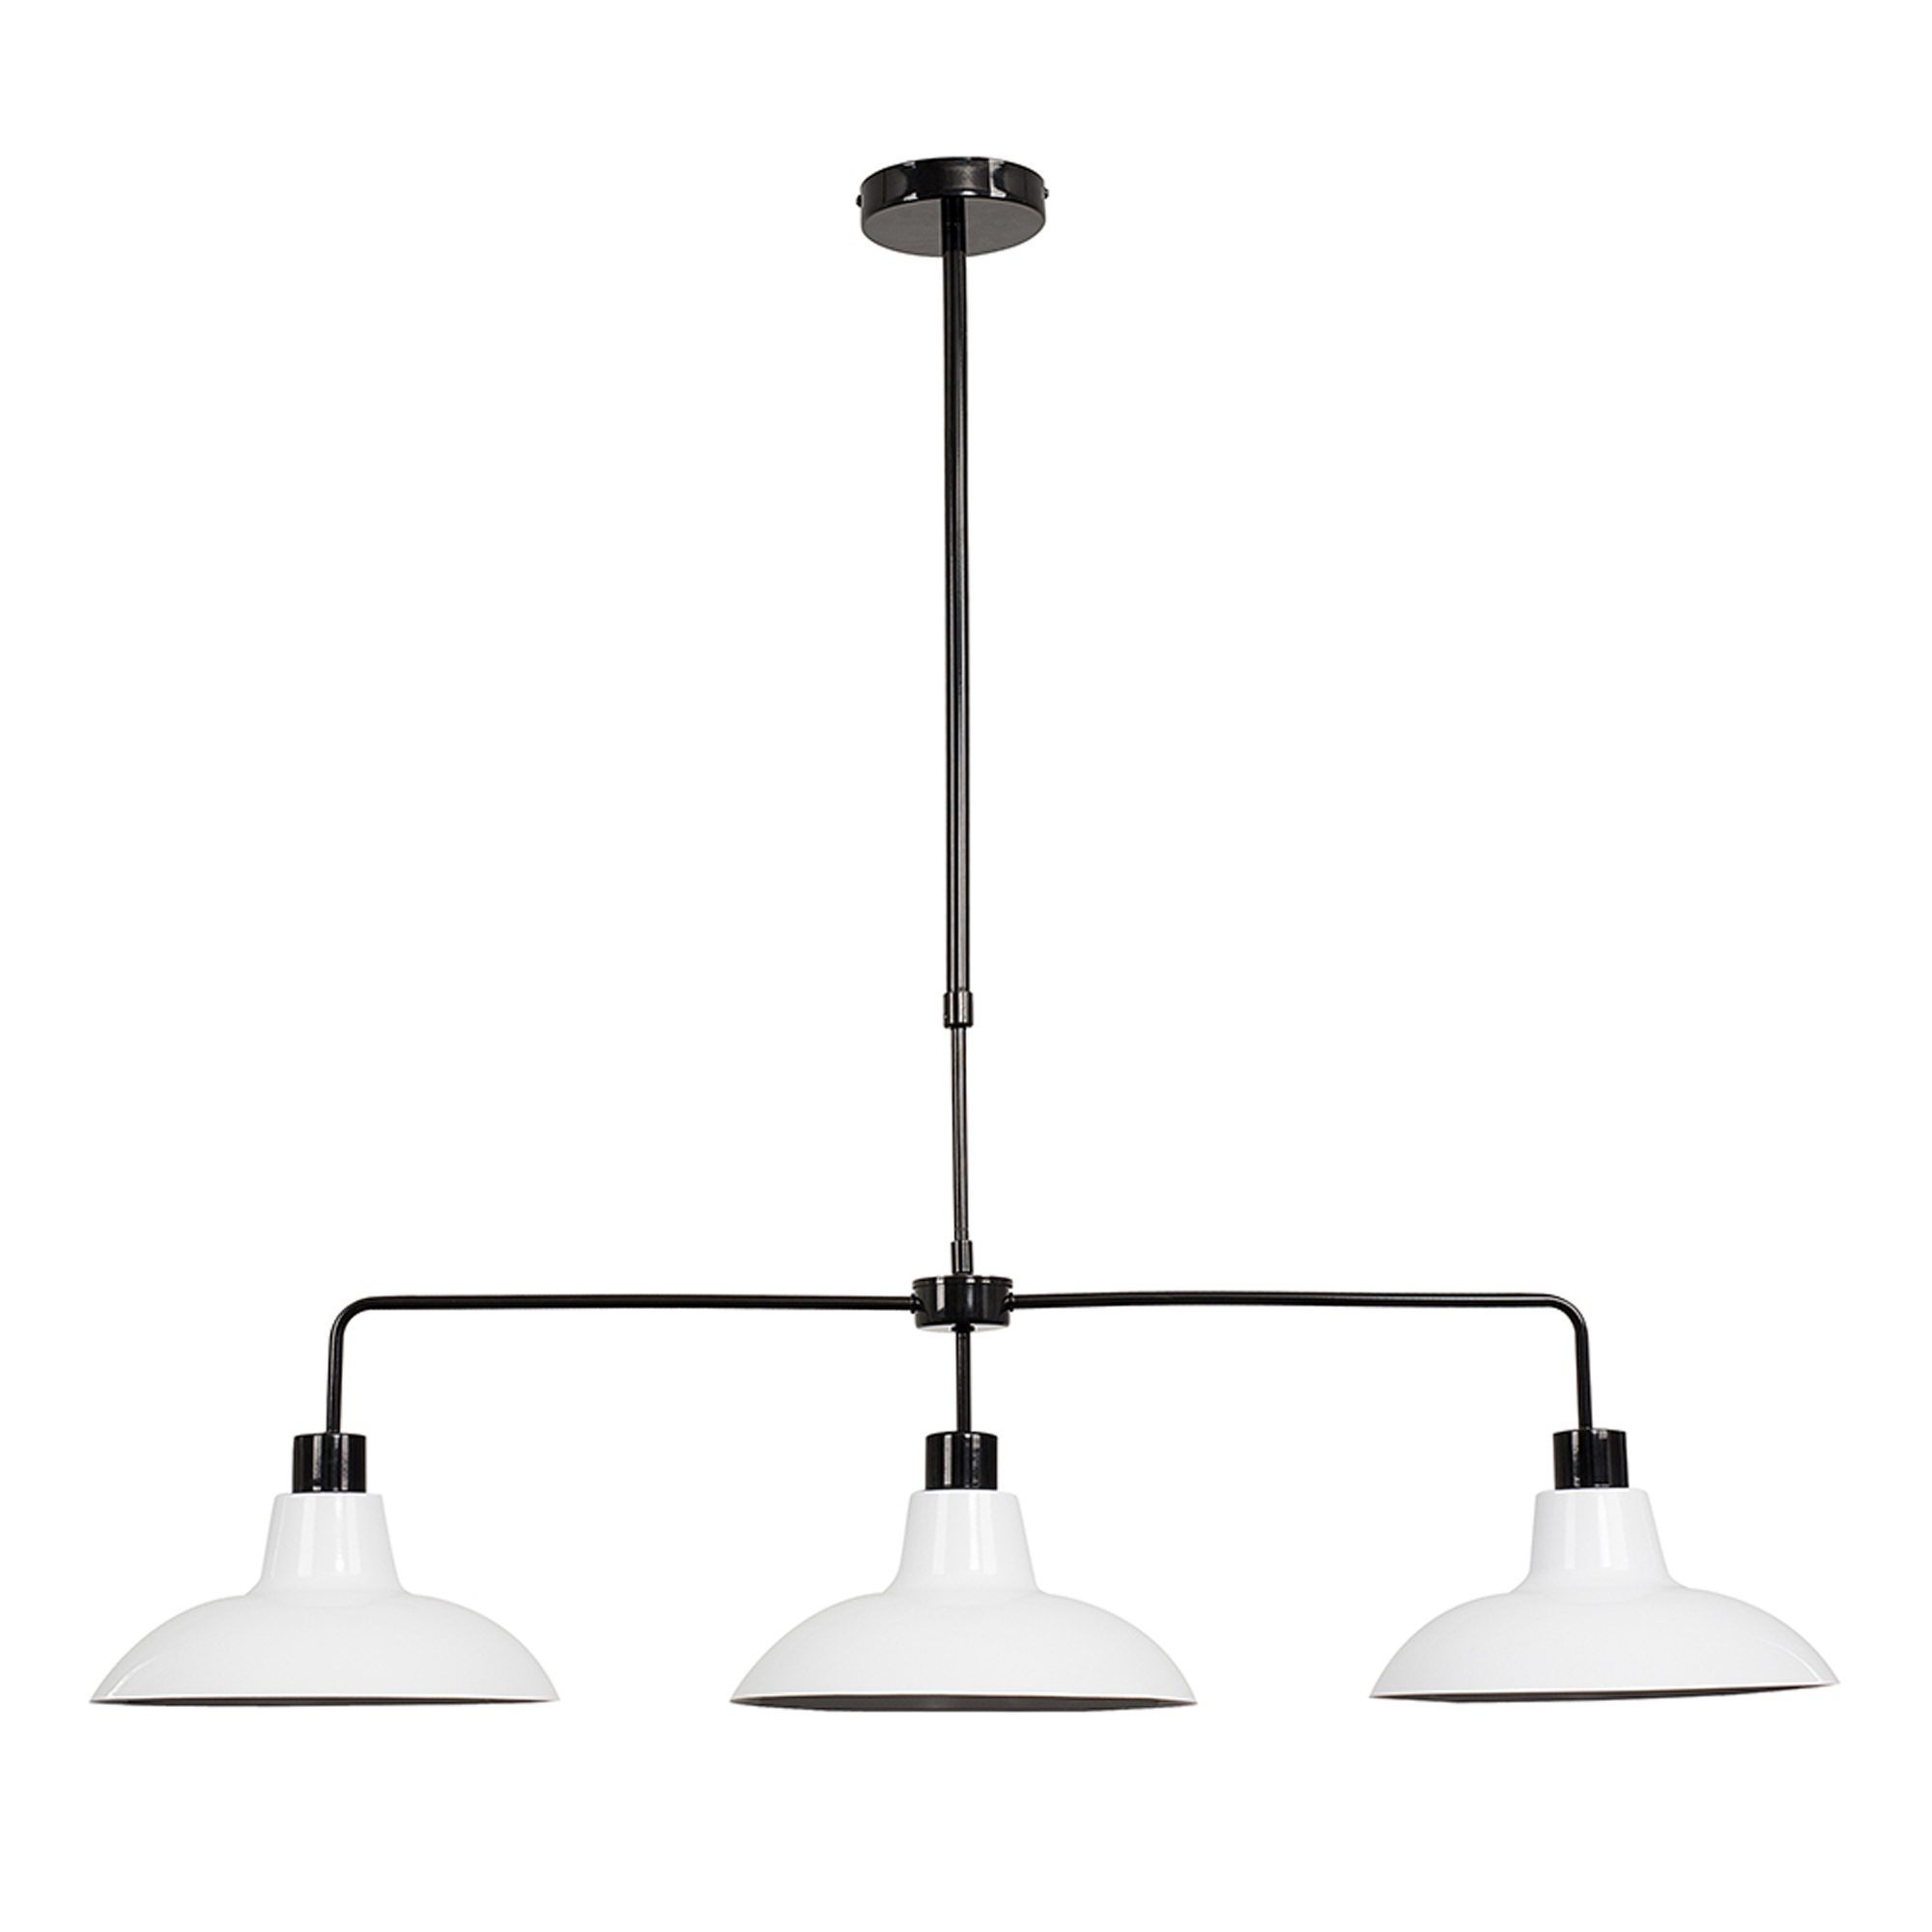 Huckleberry Black 3 Way Over Table Light with White Shades